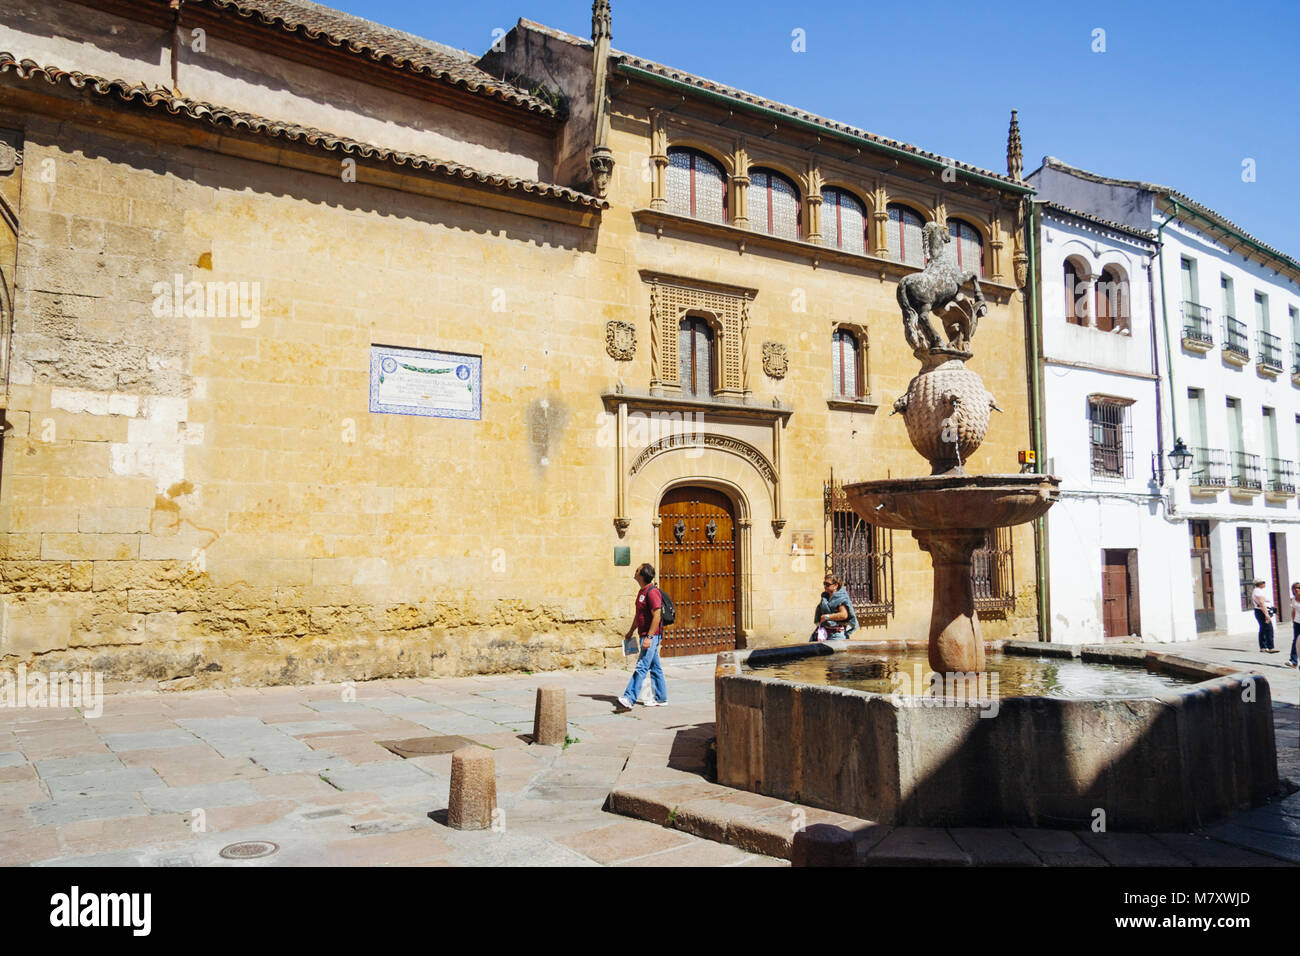 Cordoba, Andalusia, Spain : Tourists walk past the Renaissance fountain and Posada del Potro inn, mentioned by Cervantes - Stock Image